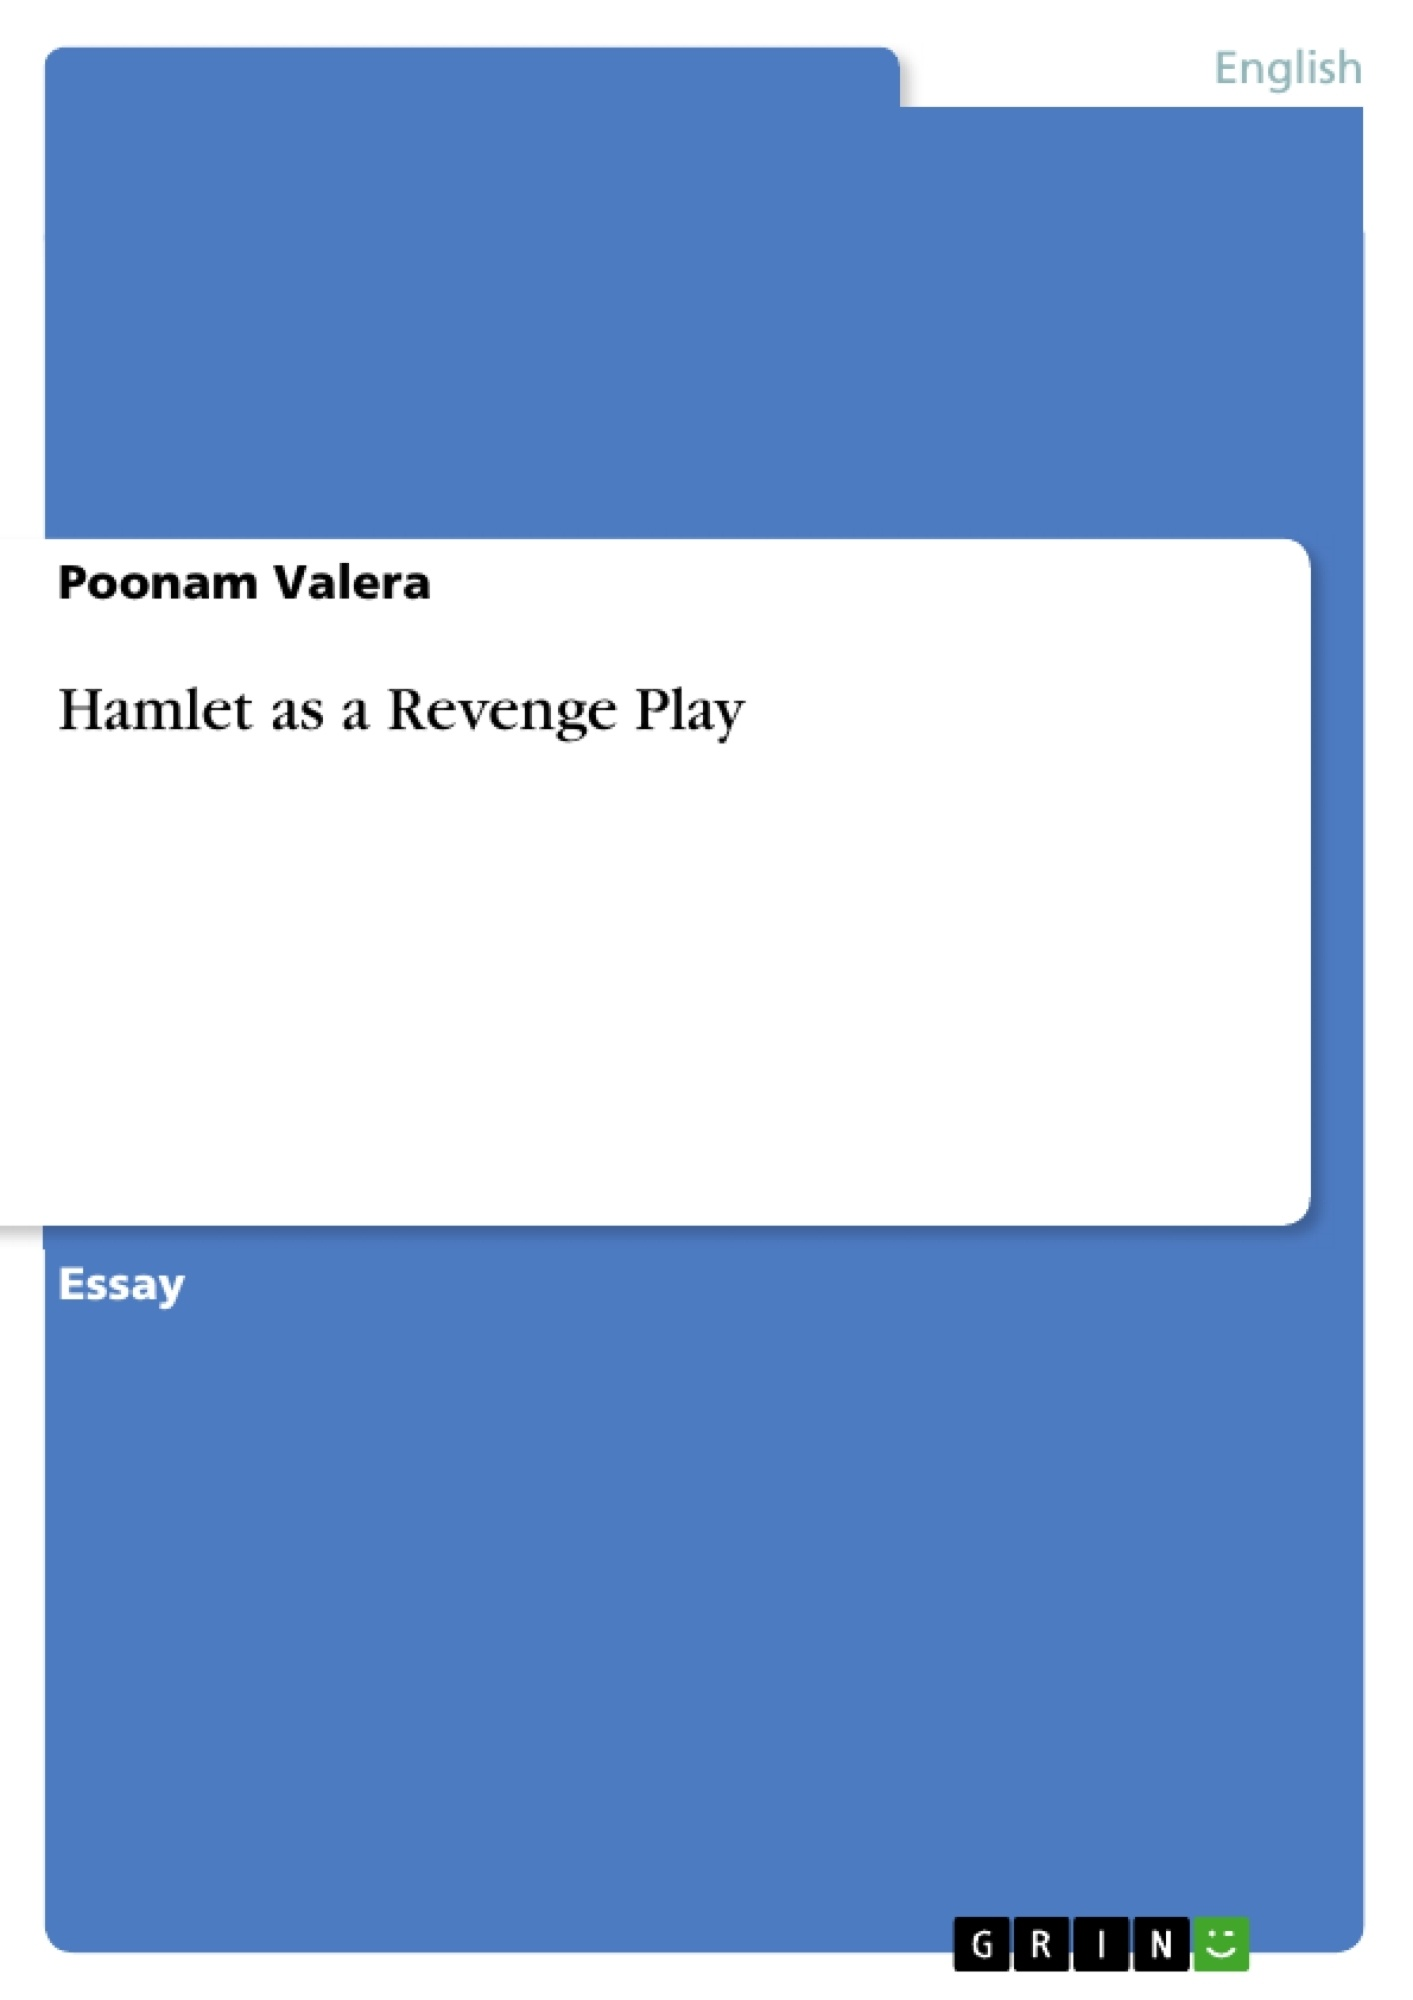 hamlet as a revenge play publish your master s thesis upload your own papers earn money and win an iphone 7